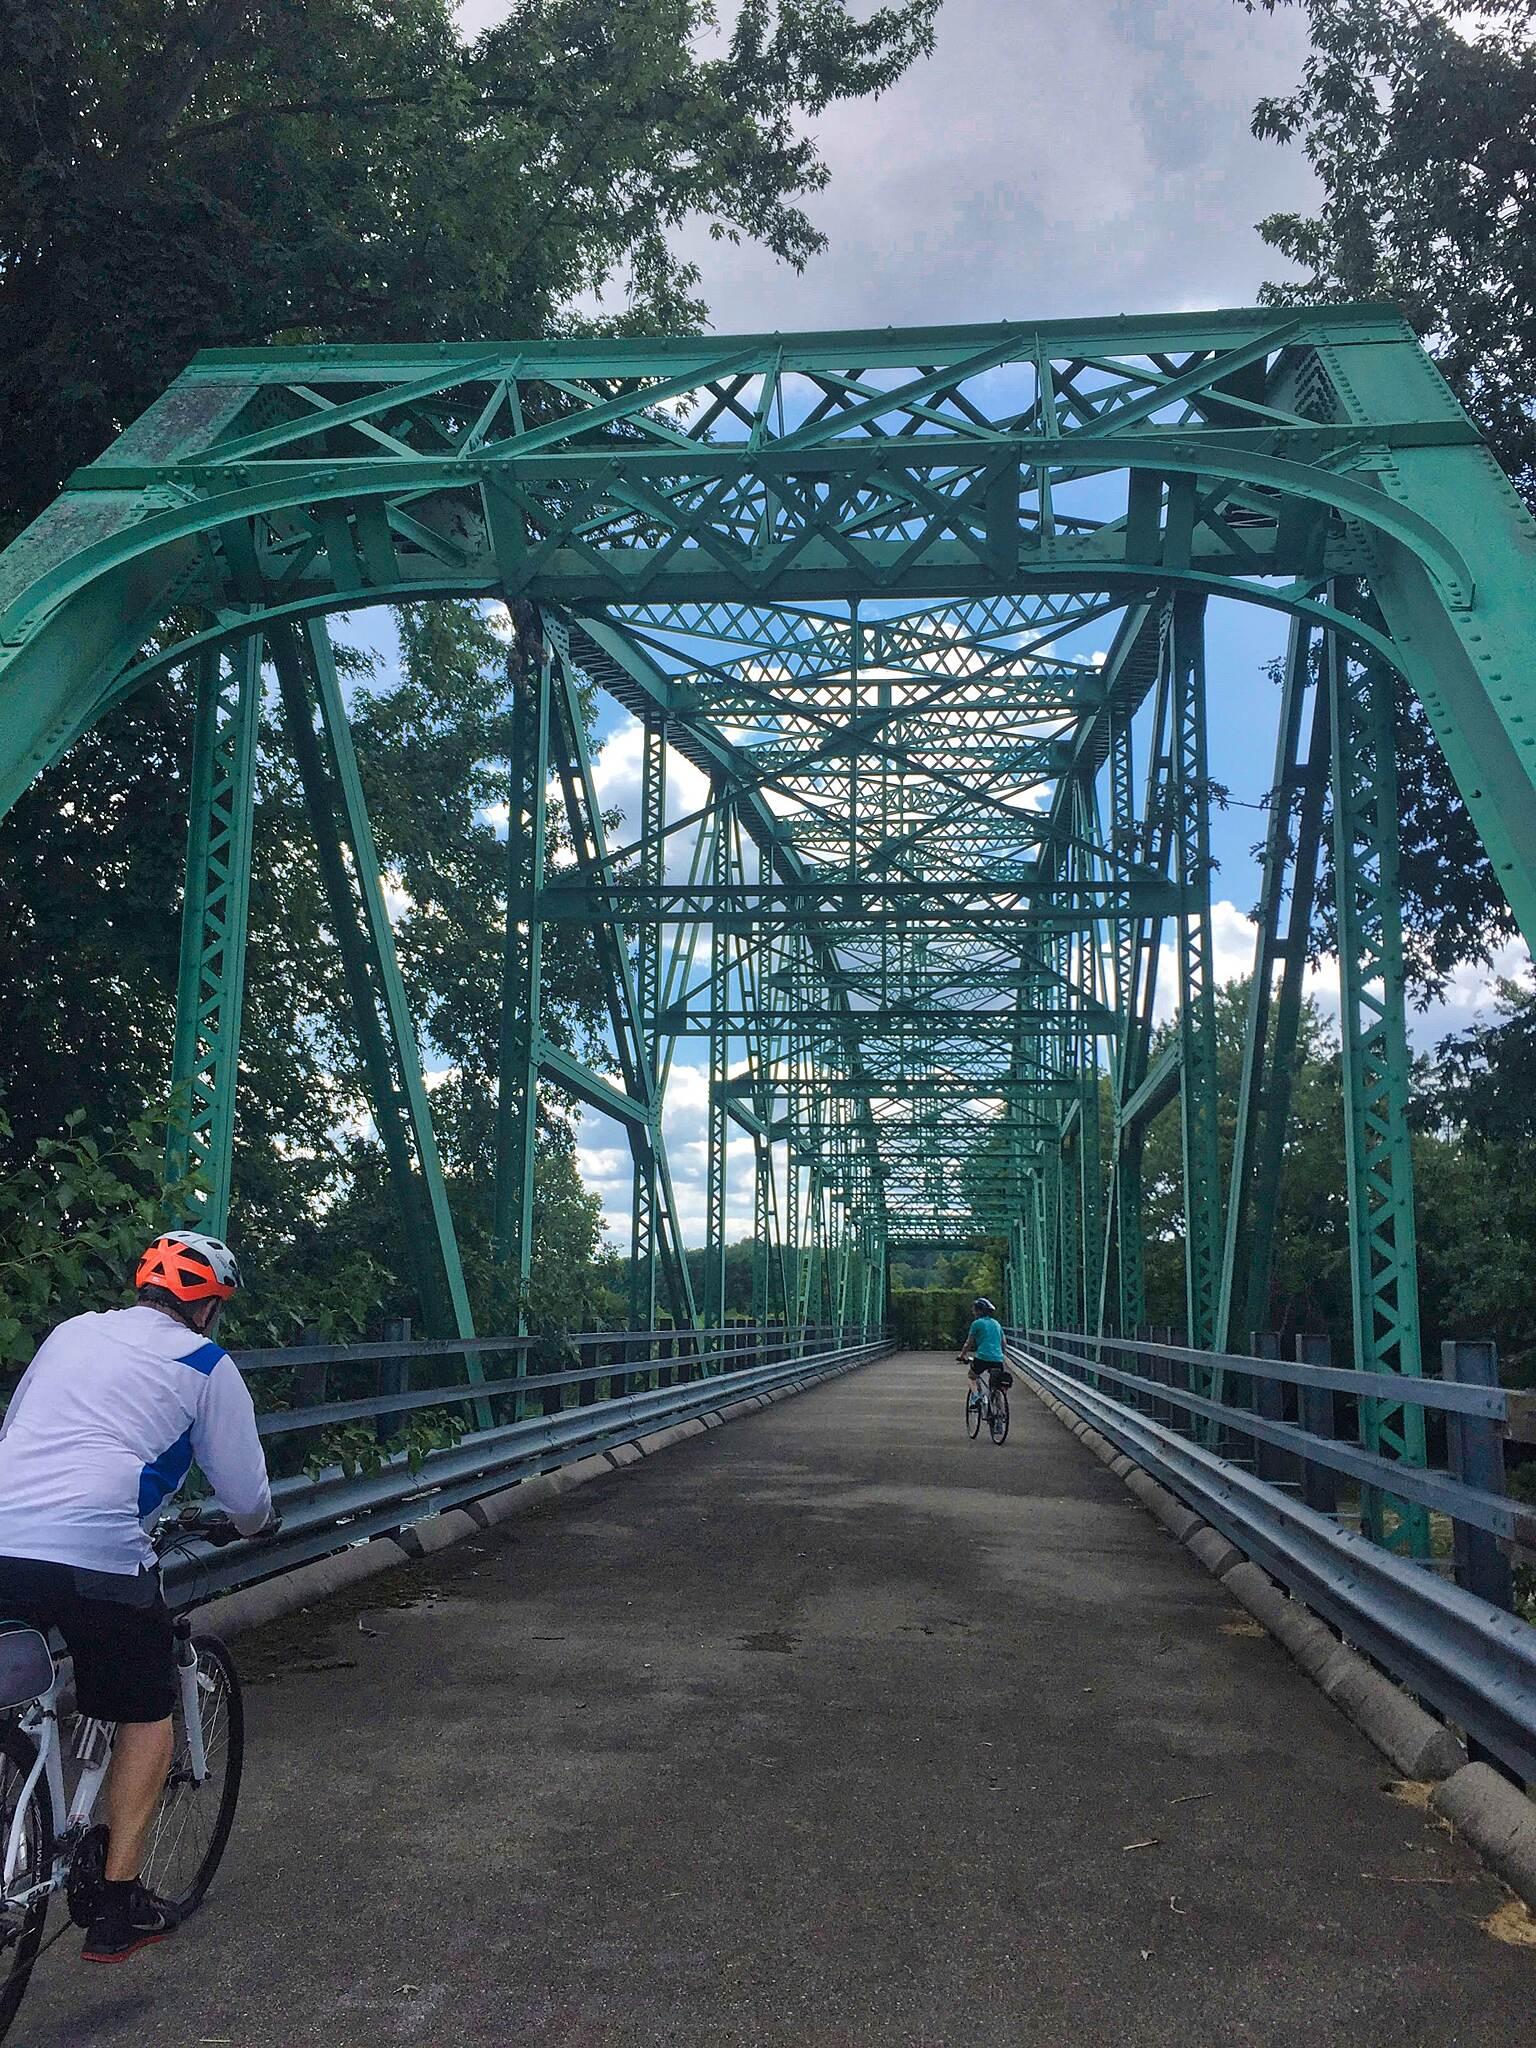 Great Miami River Trail Bridge to Nowhere This bridge crosses the Great Miami River near Huber Heights between Rip Rap Road toward Radvansky Lane but the far end is blocked preventing passage.  August 12, 2017.